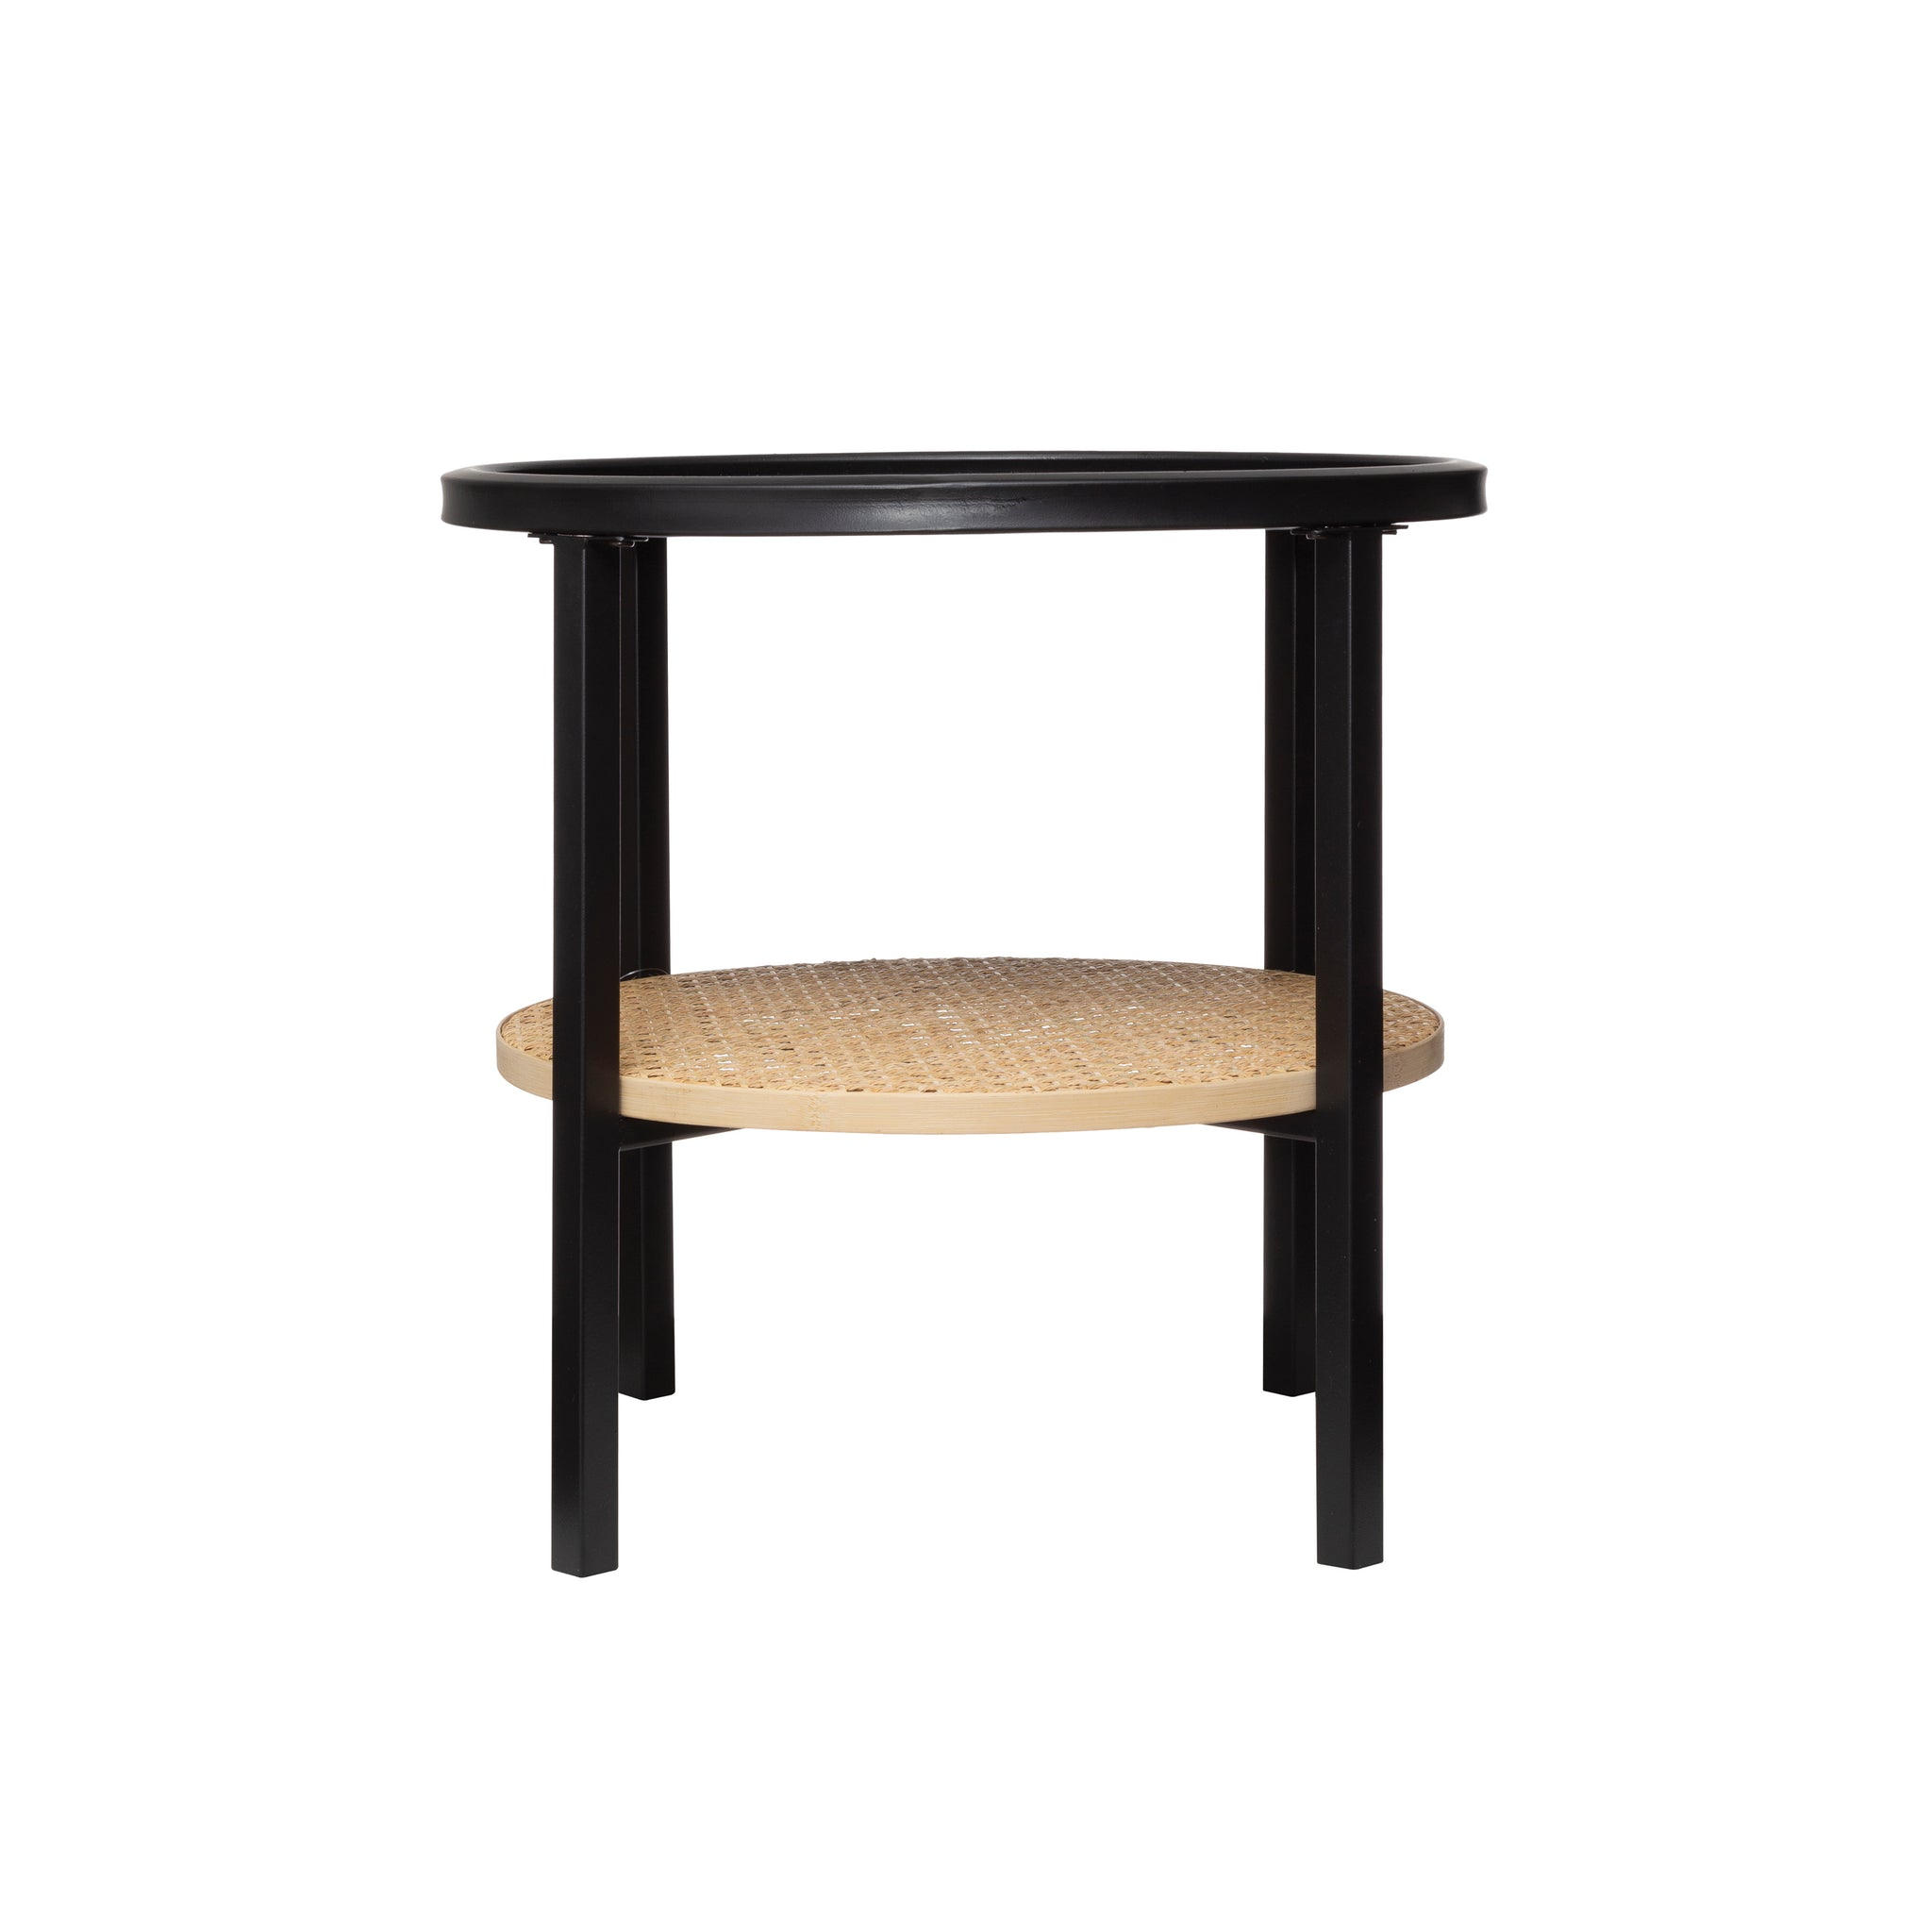 "17.75"" Round Metal Accent Table with Tray-Style Top & Handwoven Bamboo Shelf"